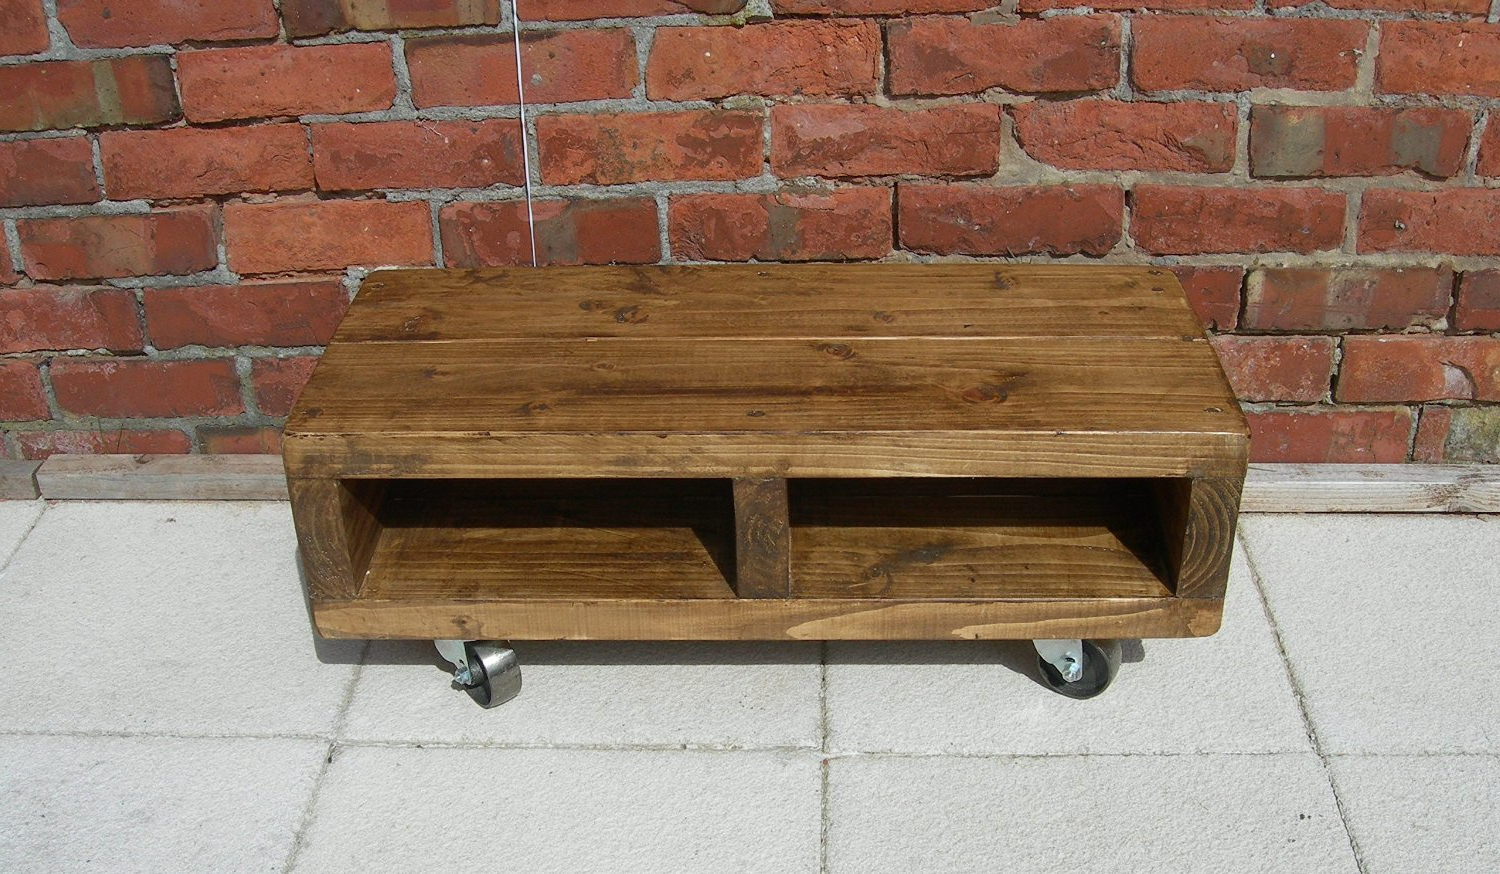 Solid Wood Low Tv Unit With Cast Iron Wheels, 90 Cm Contemporary Pertaining To Latest Wooden Tv Stand With Wheels (Gallery 5 of 20)